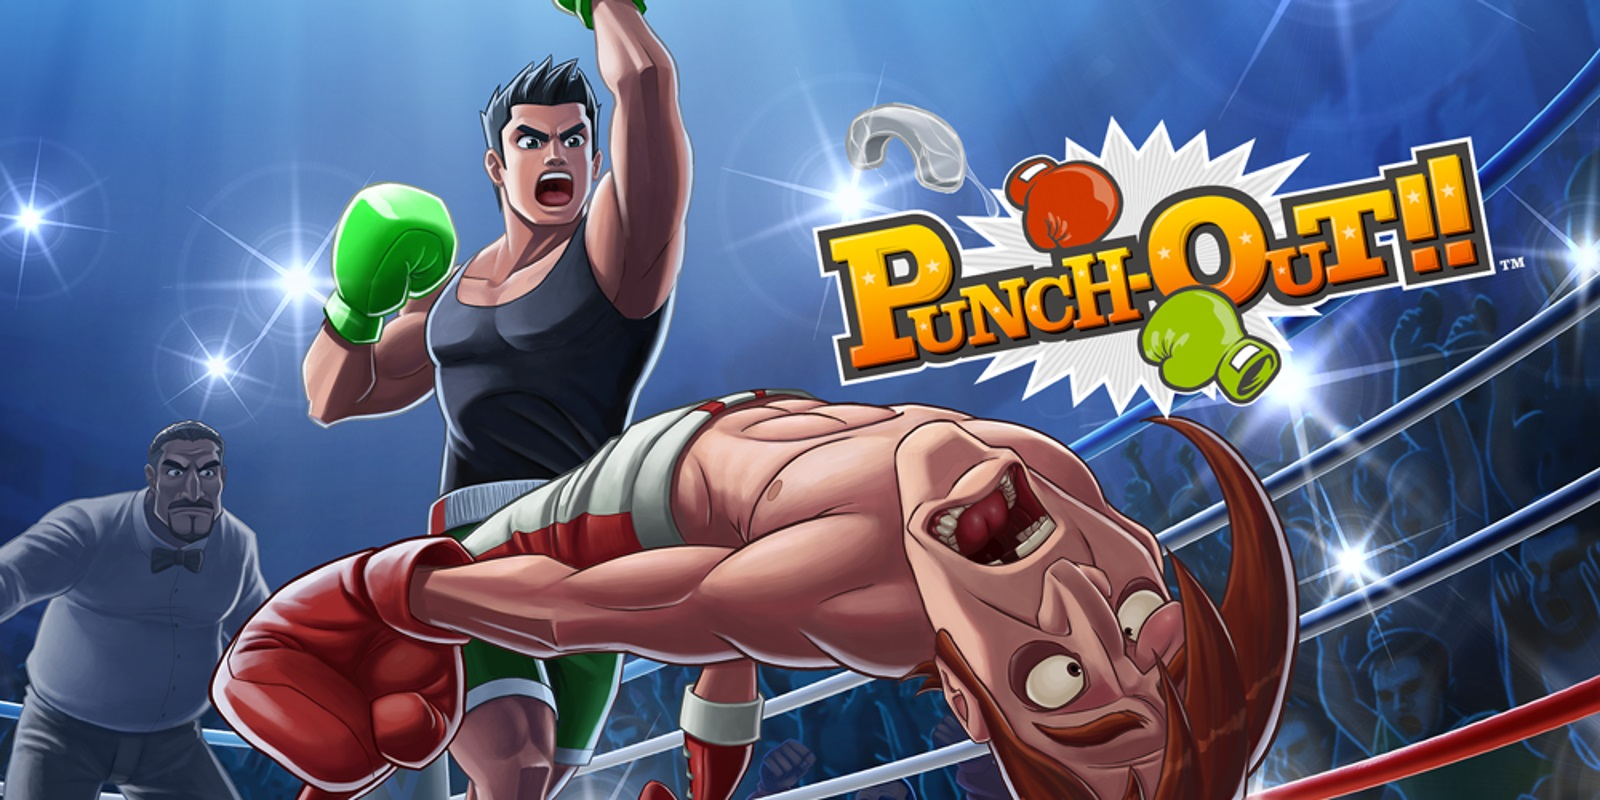 Rumor: Sailor Moon Easter egg in Punch-Out!! for Wii cost Nintendo and Next Level Games million